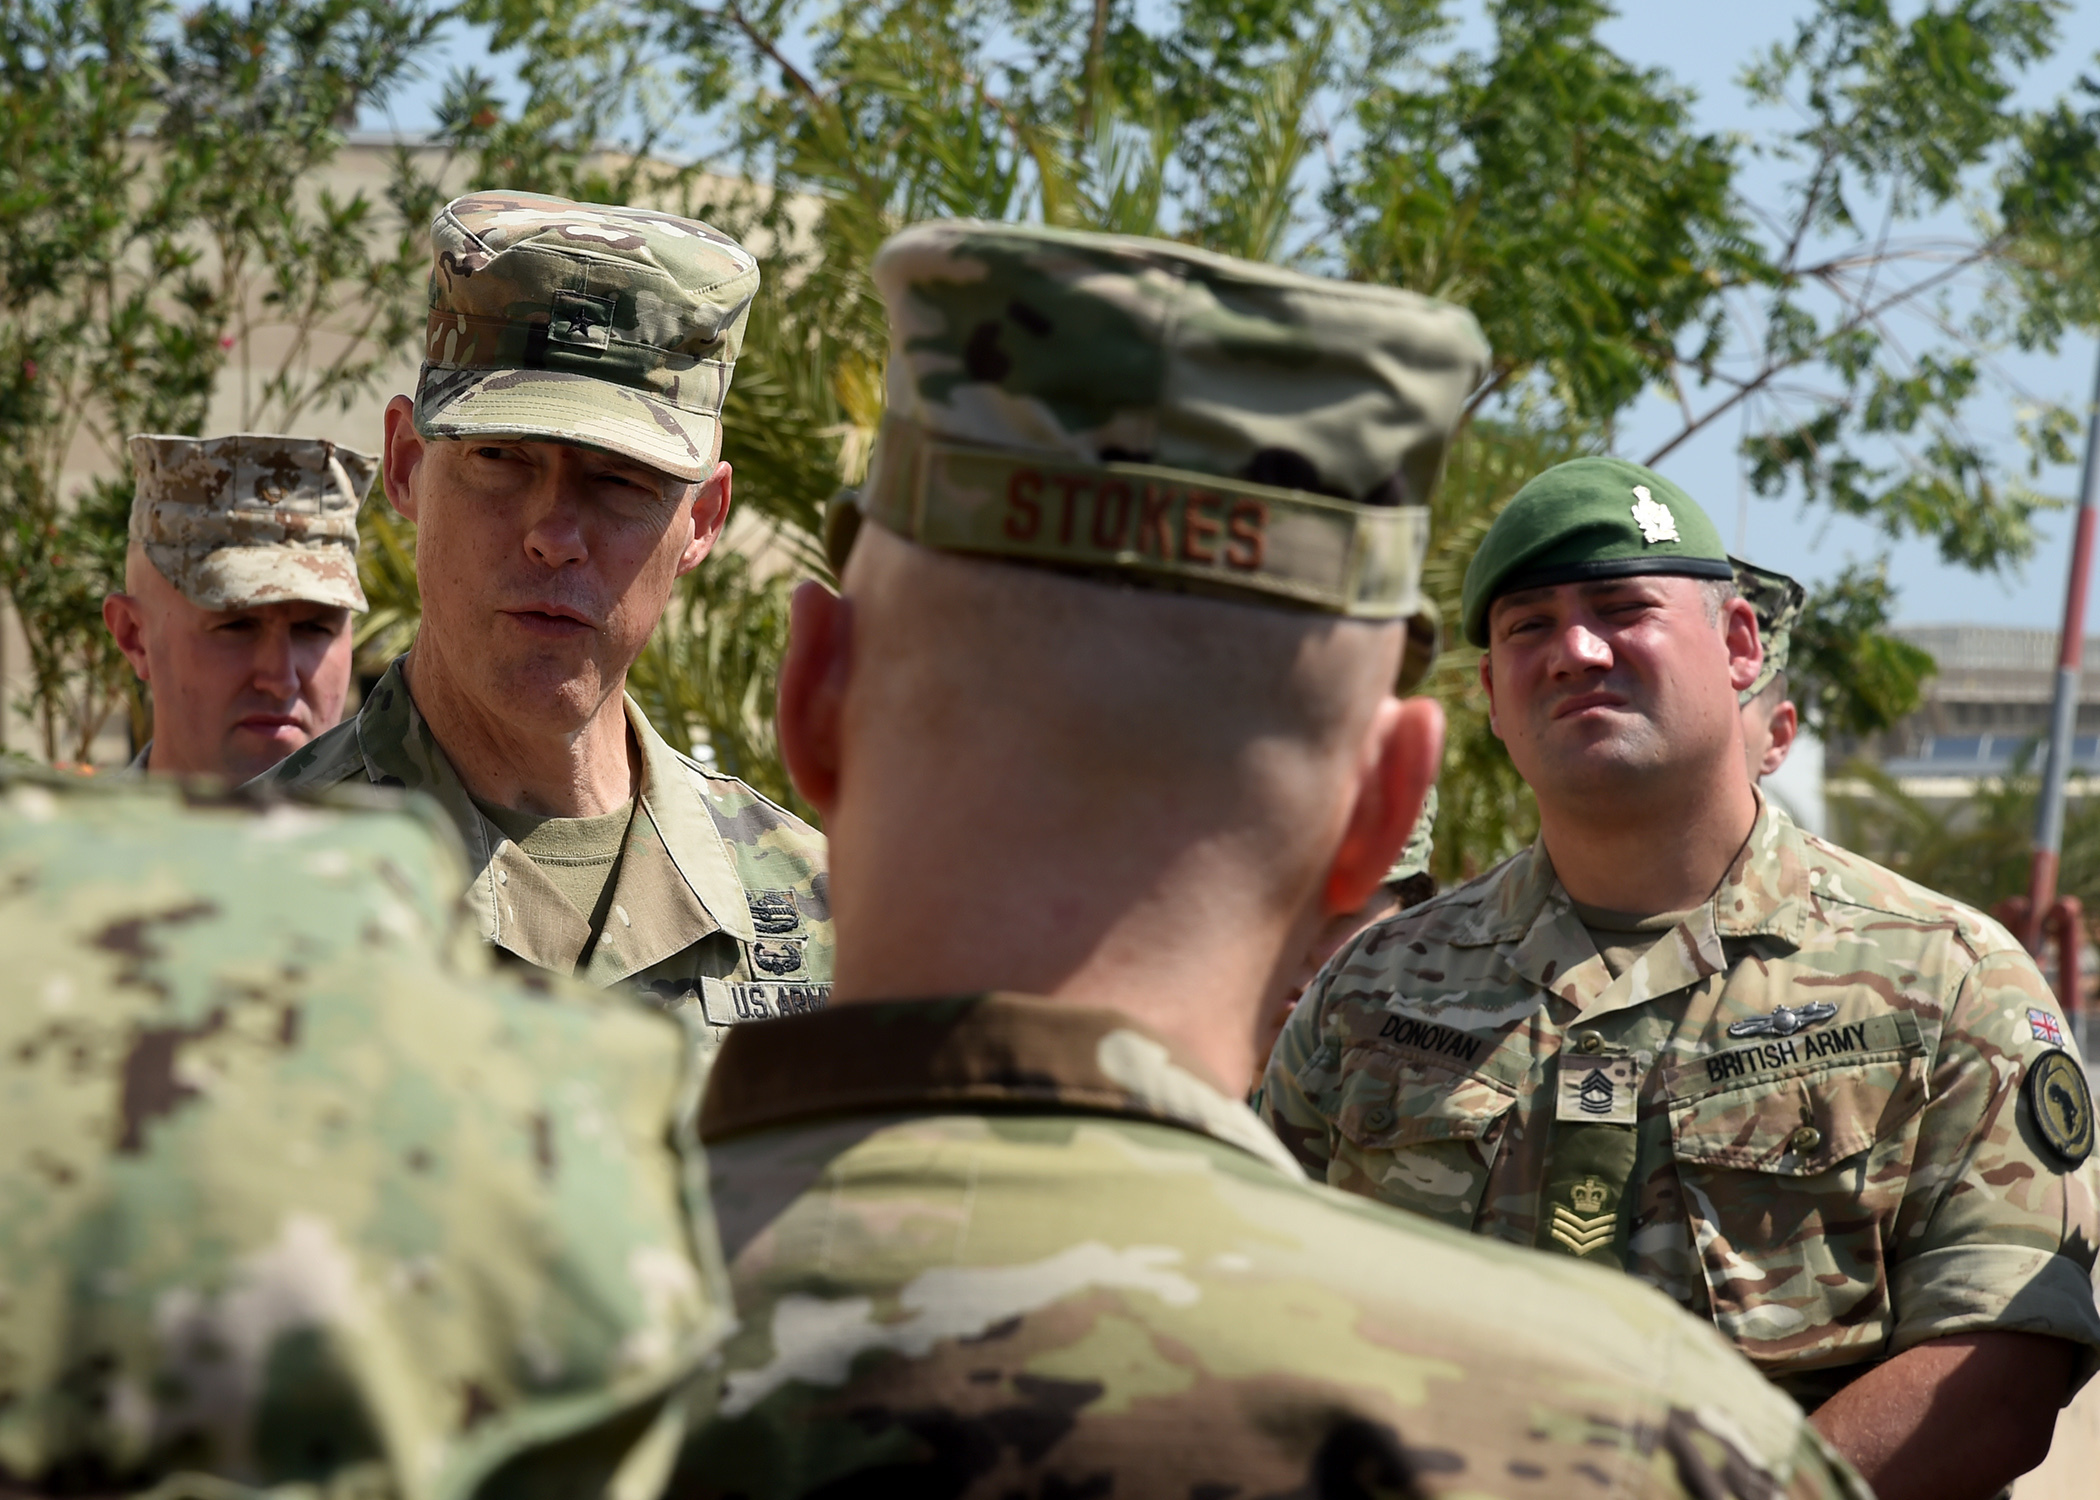 U.S. Army Brig. Gen. William L. Zana (left), deputy commander, Combined Joint Task Force-Horn of Africa, speaks during a ceremony honoring the late U.S. President George H.W. Bush at Camp Lemonnier, Djibouti, Dec. 5, 2018. (U.S. Navy Photo by Mass Communication Specialist 1st Class Nick Scott/released)